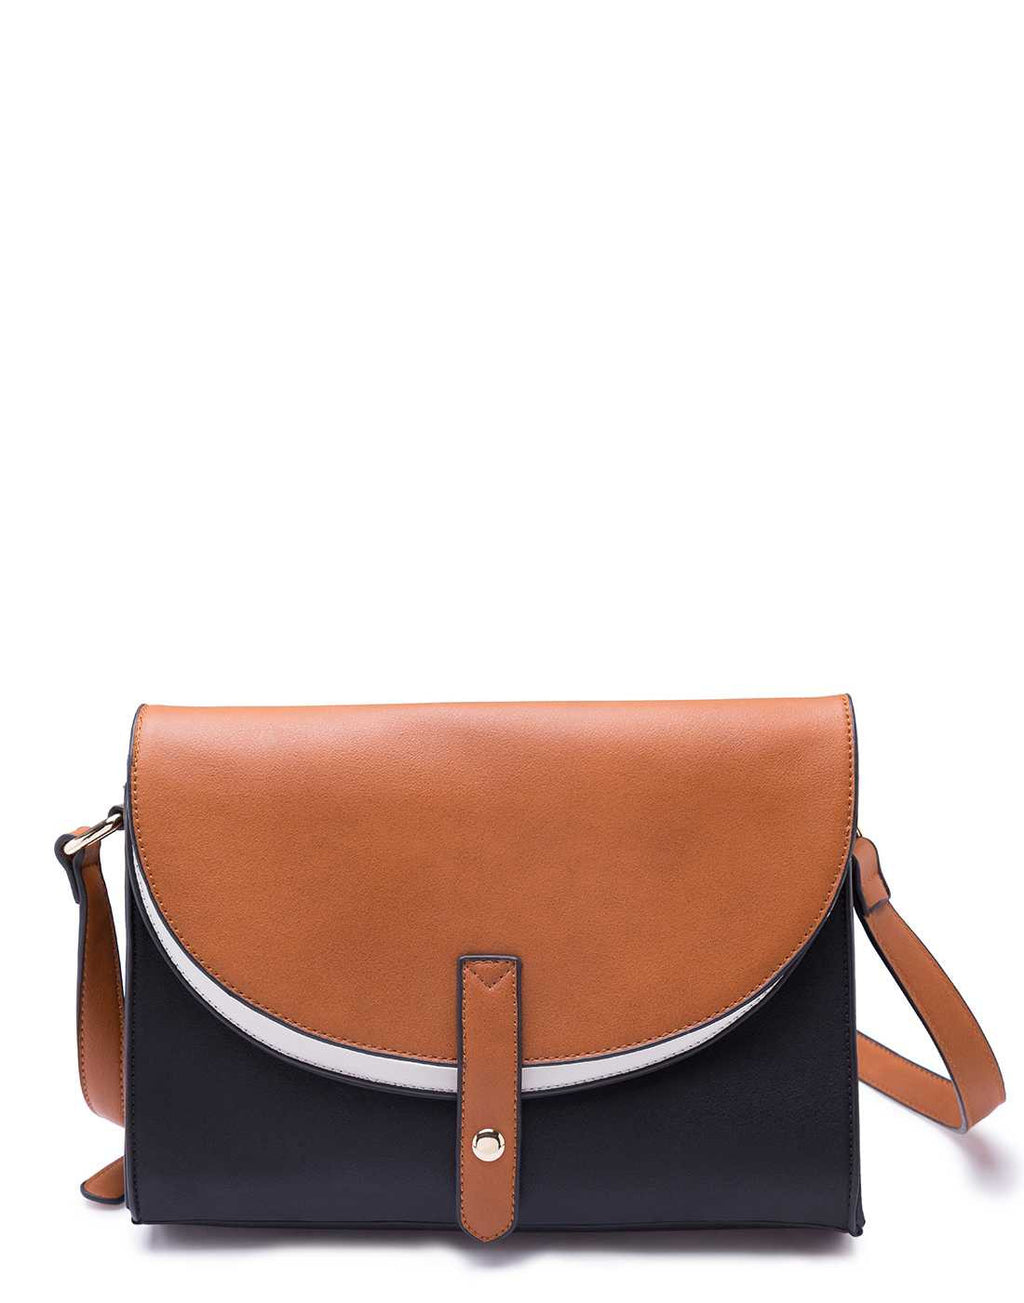 Black Sling Bag with Tan Flap